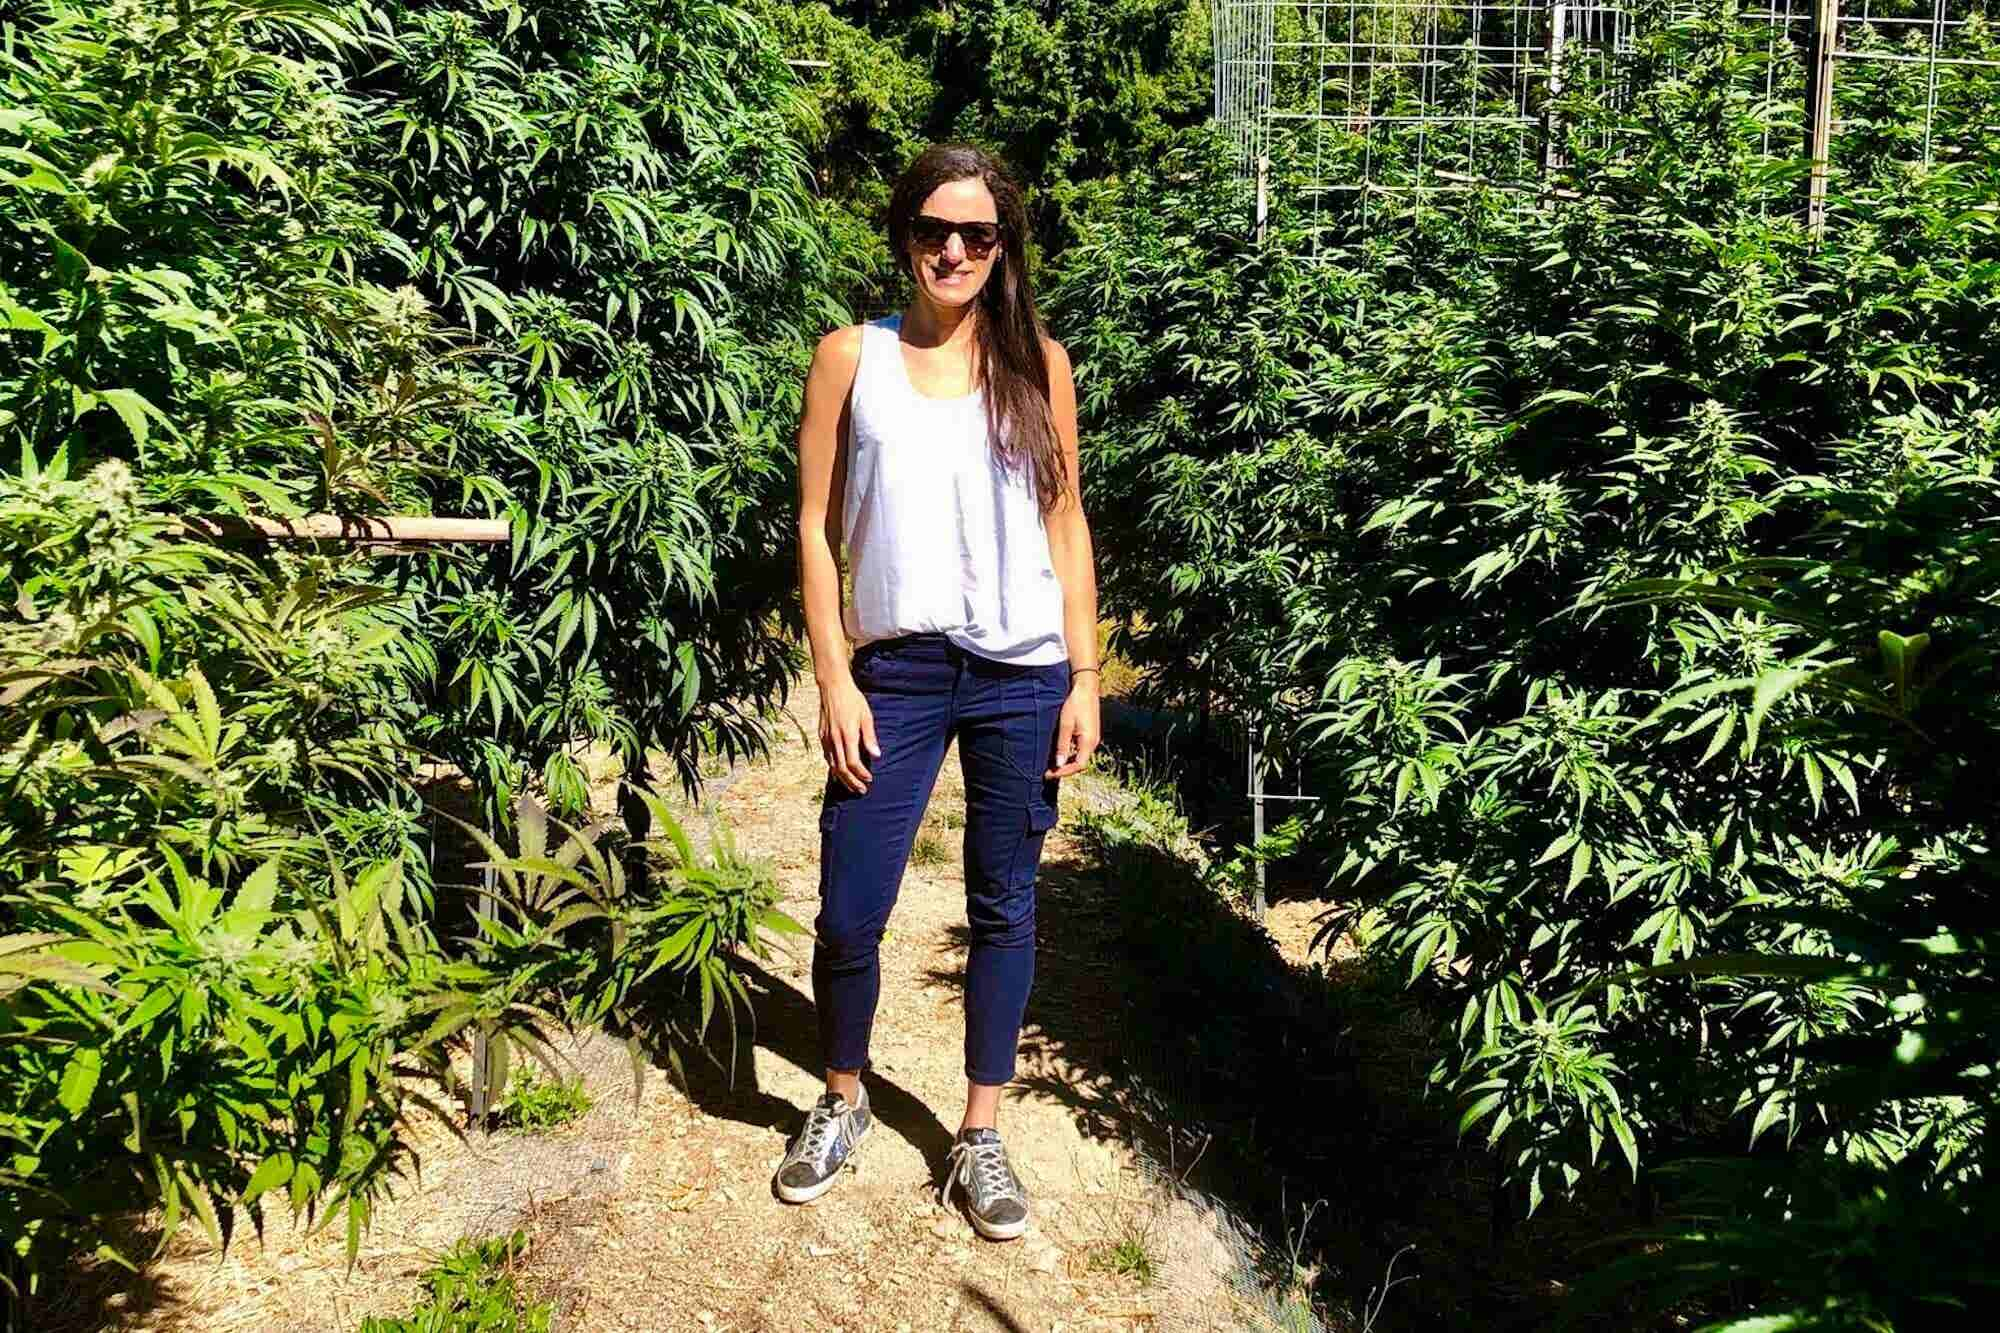 She Runs One of The Biggest PR Companies in Cannabis. So Why Haven't You Heard Of Her?